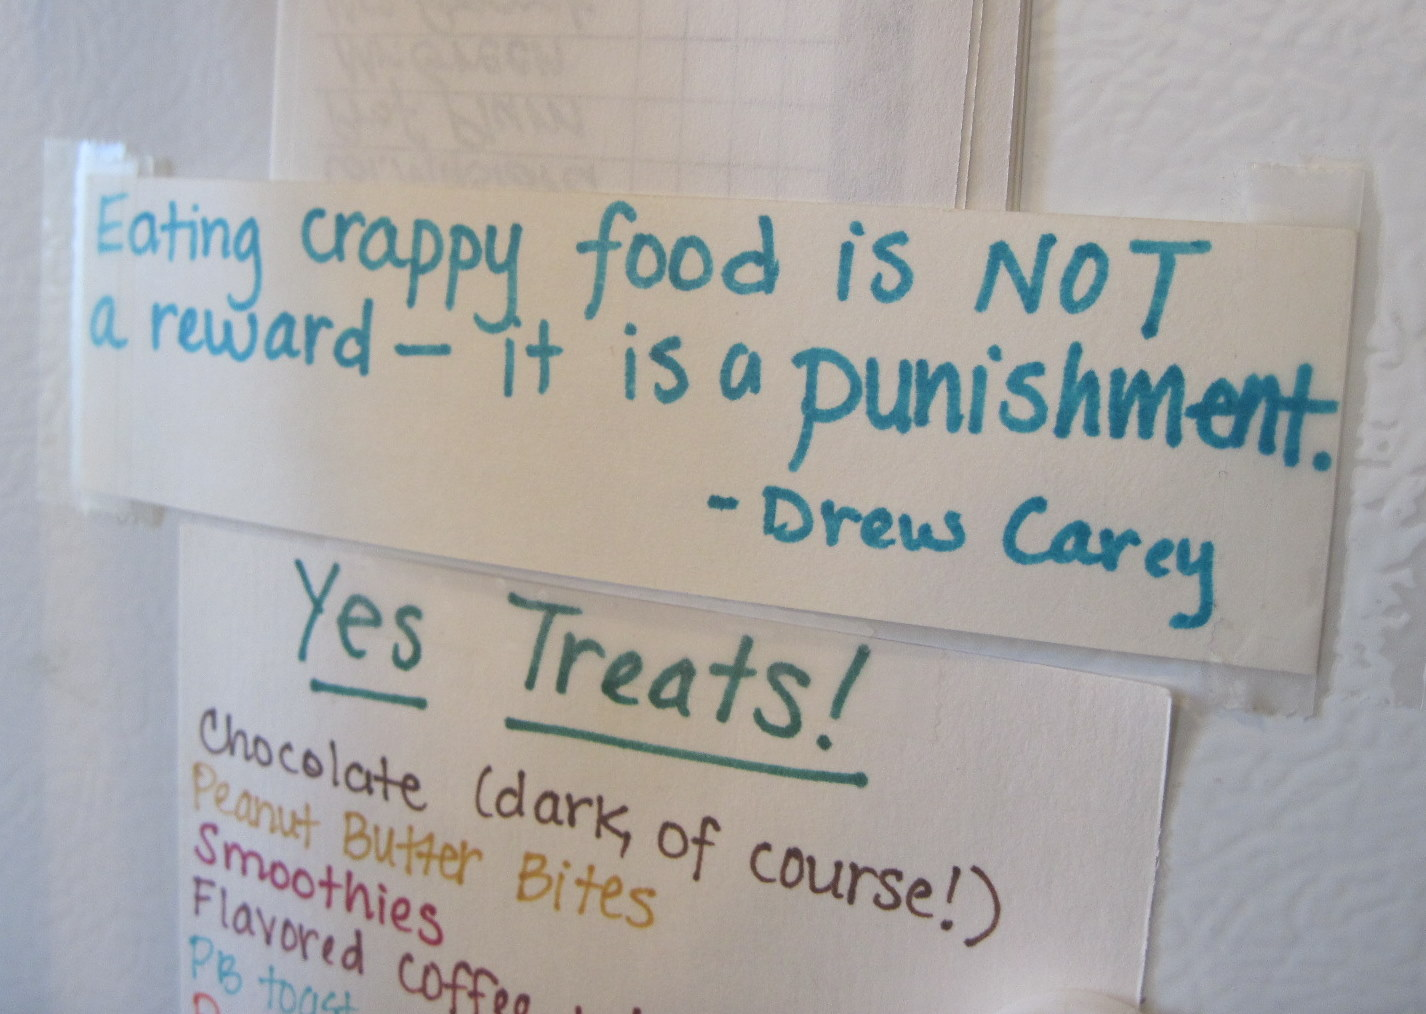 Drew Carey's quote #4